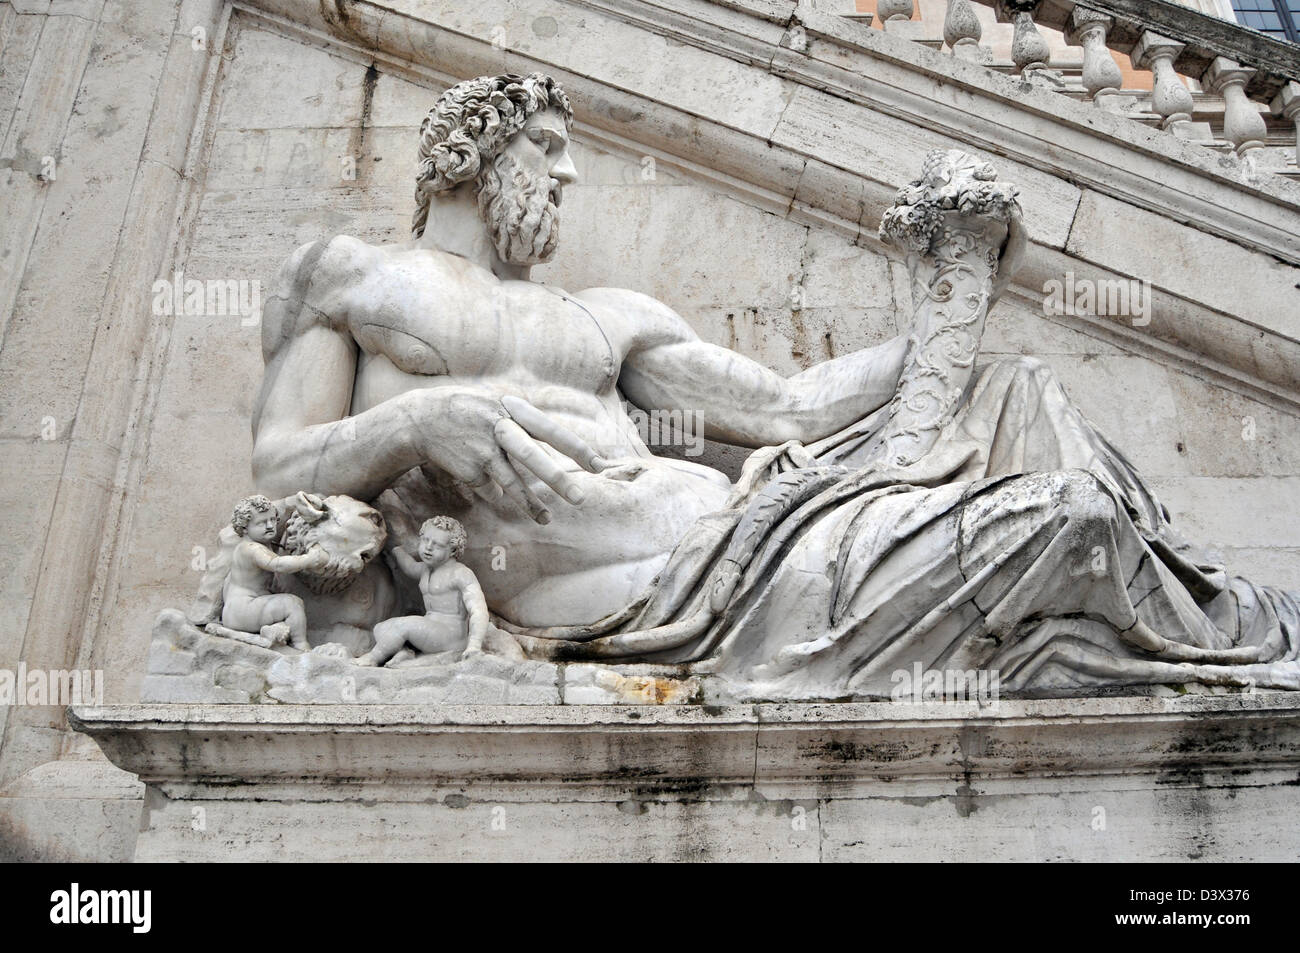 Rome Statue outside the Capitoline Museums, Statue of Tiber Capitoline, Rome Italy - Stock Image